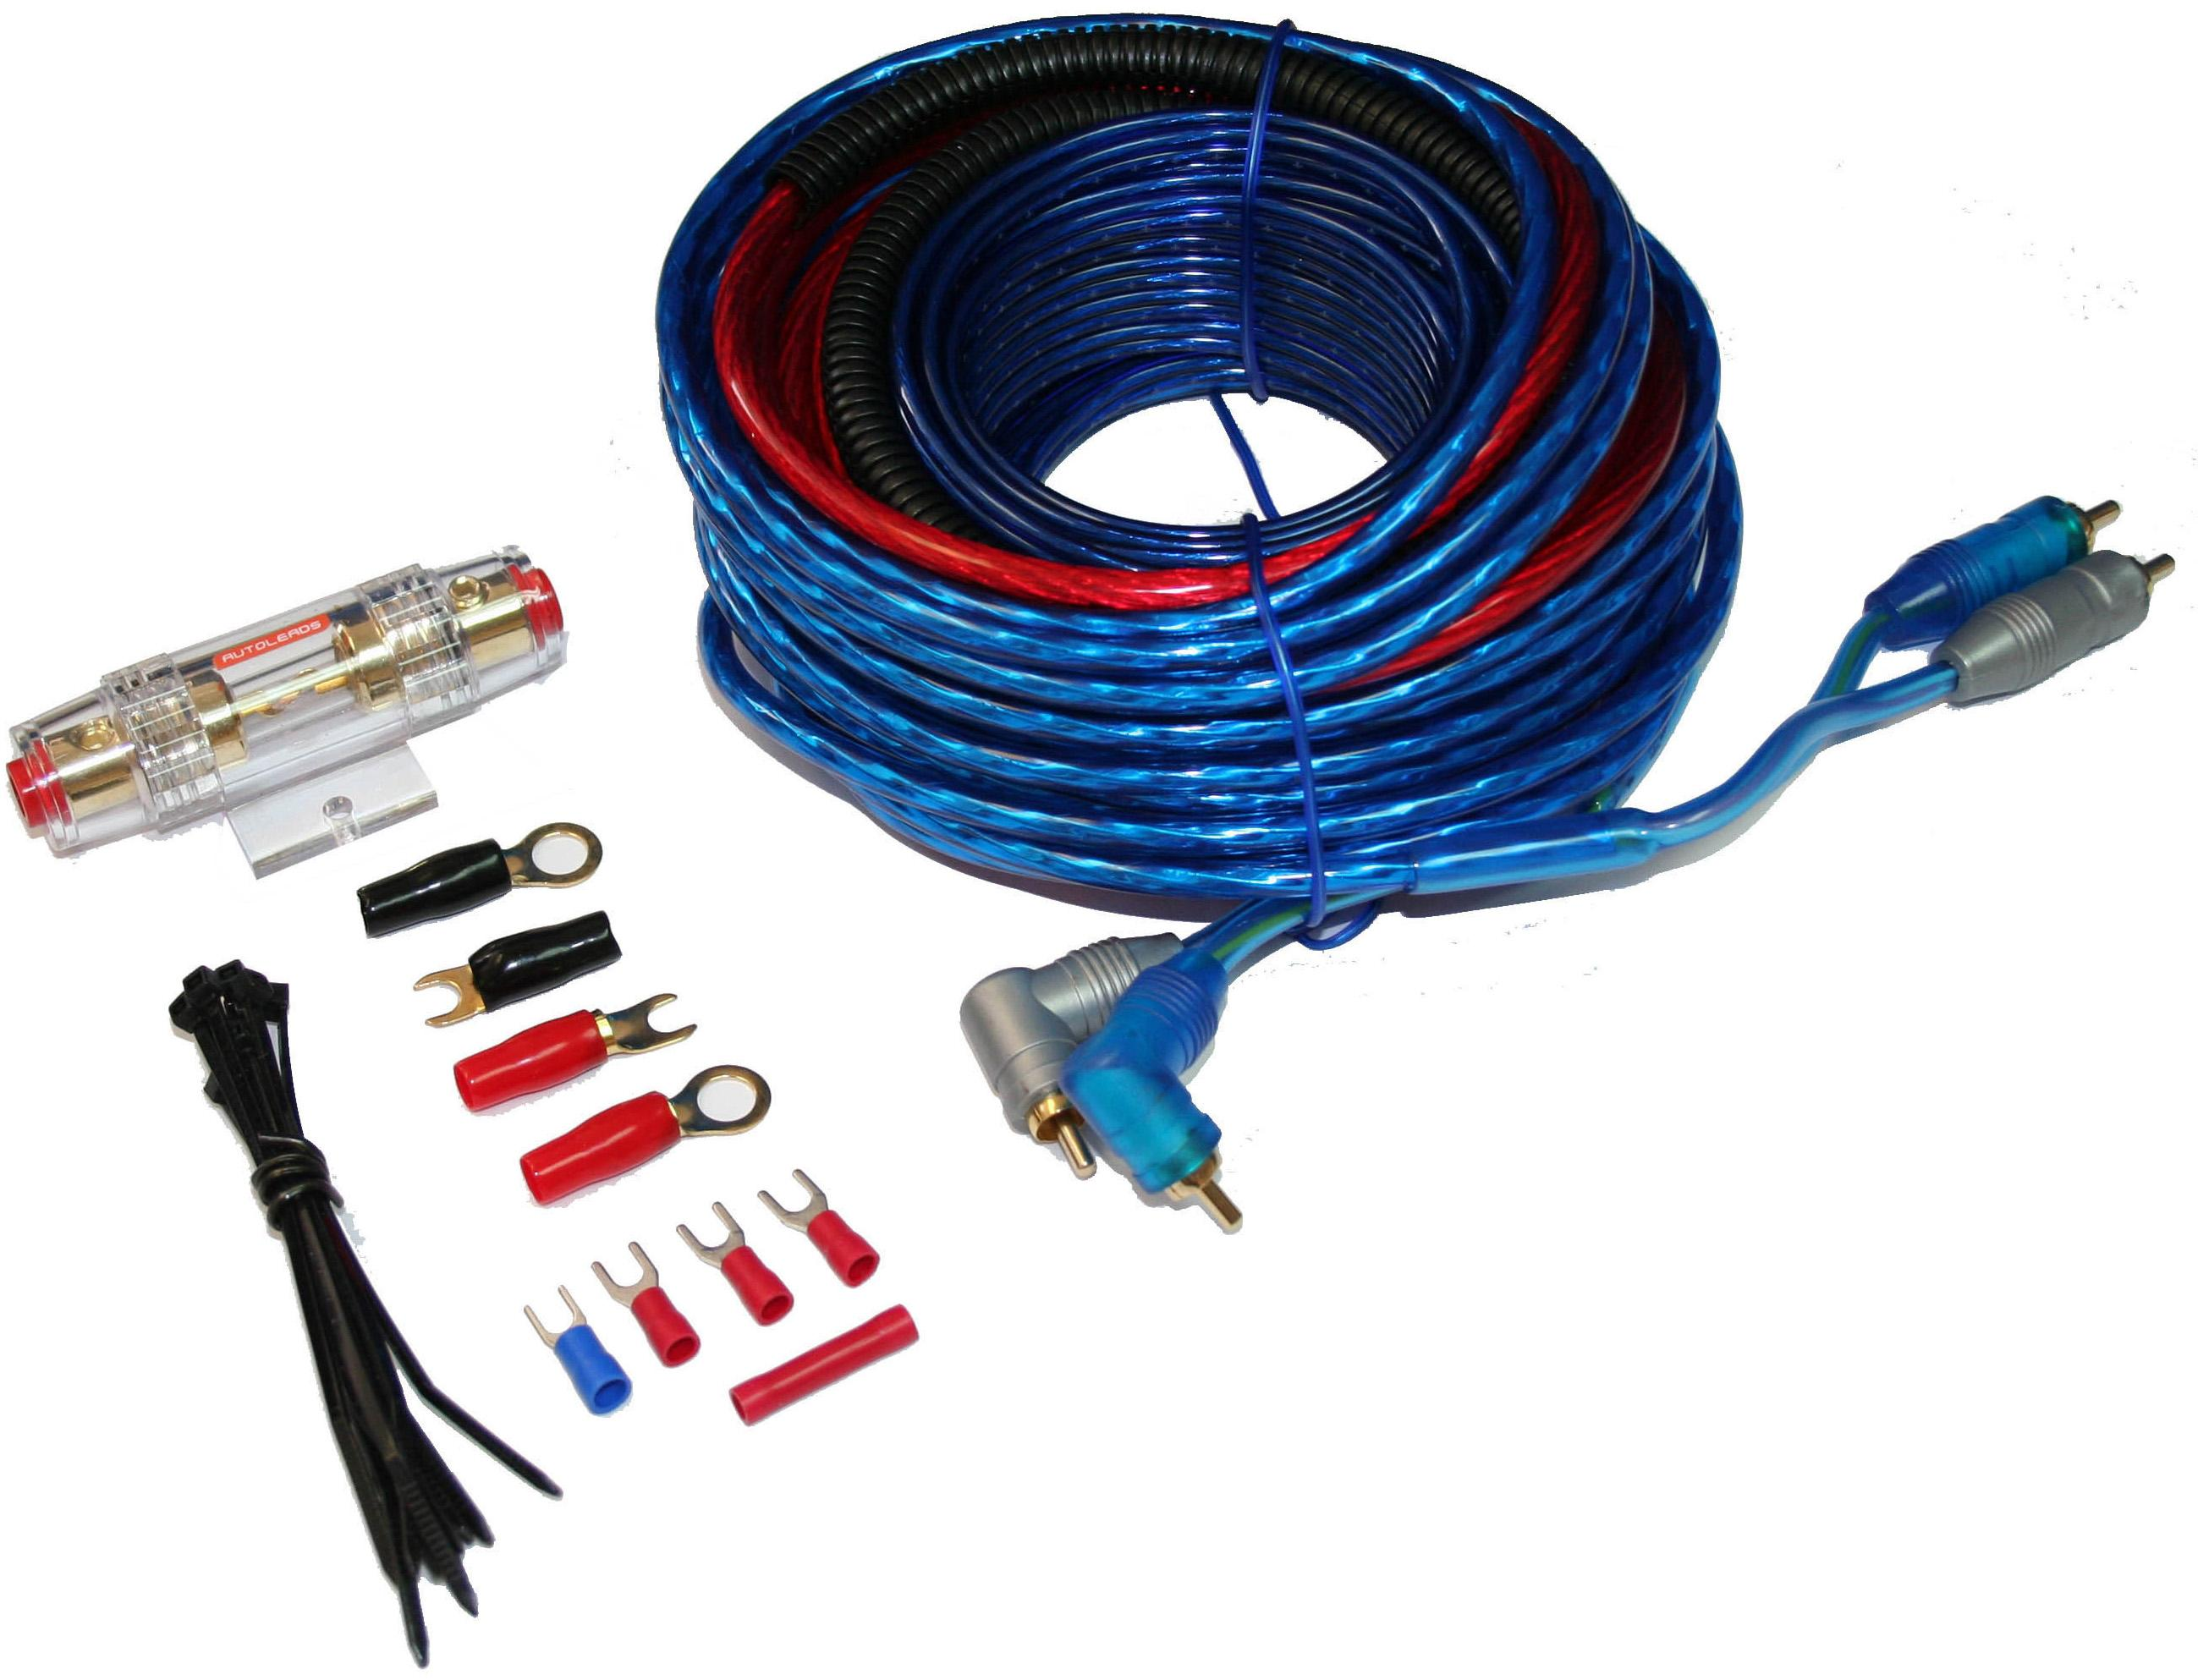 Amp Wiring Kit With Capacitor Walmart Explained Diagrams Scosche Amplifier Cca Wire Data Schema U2022